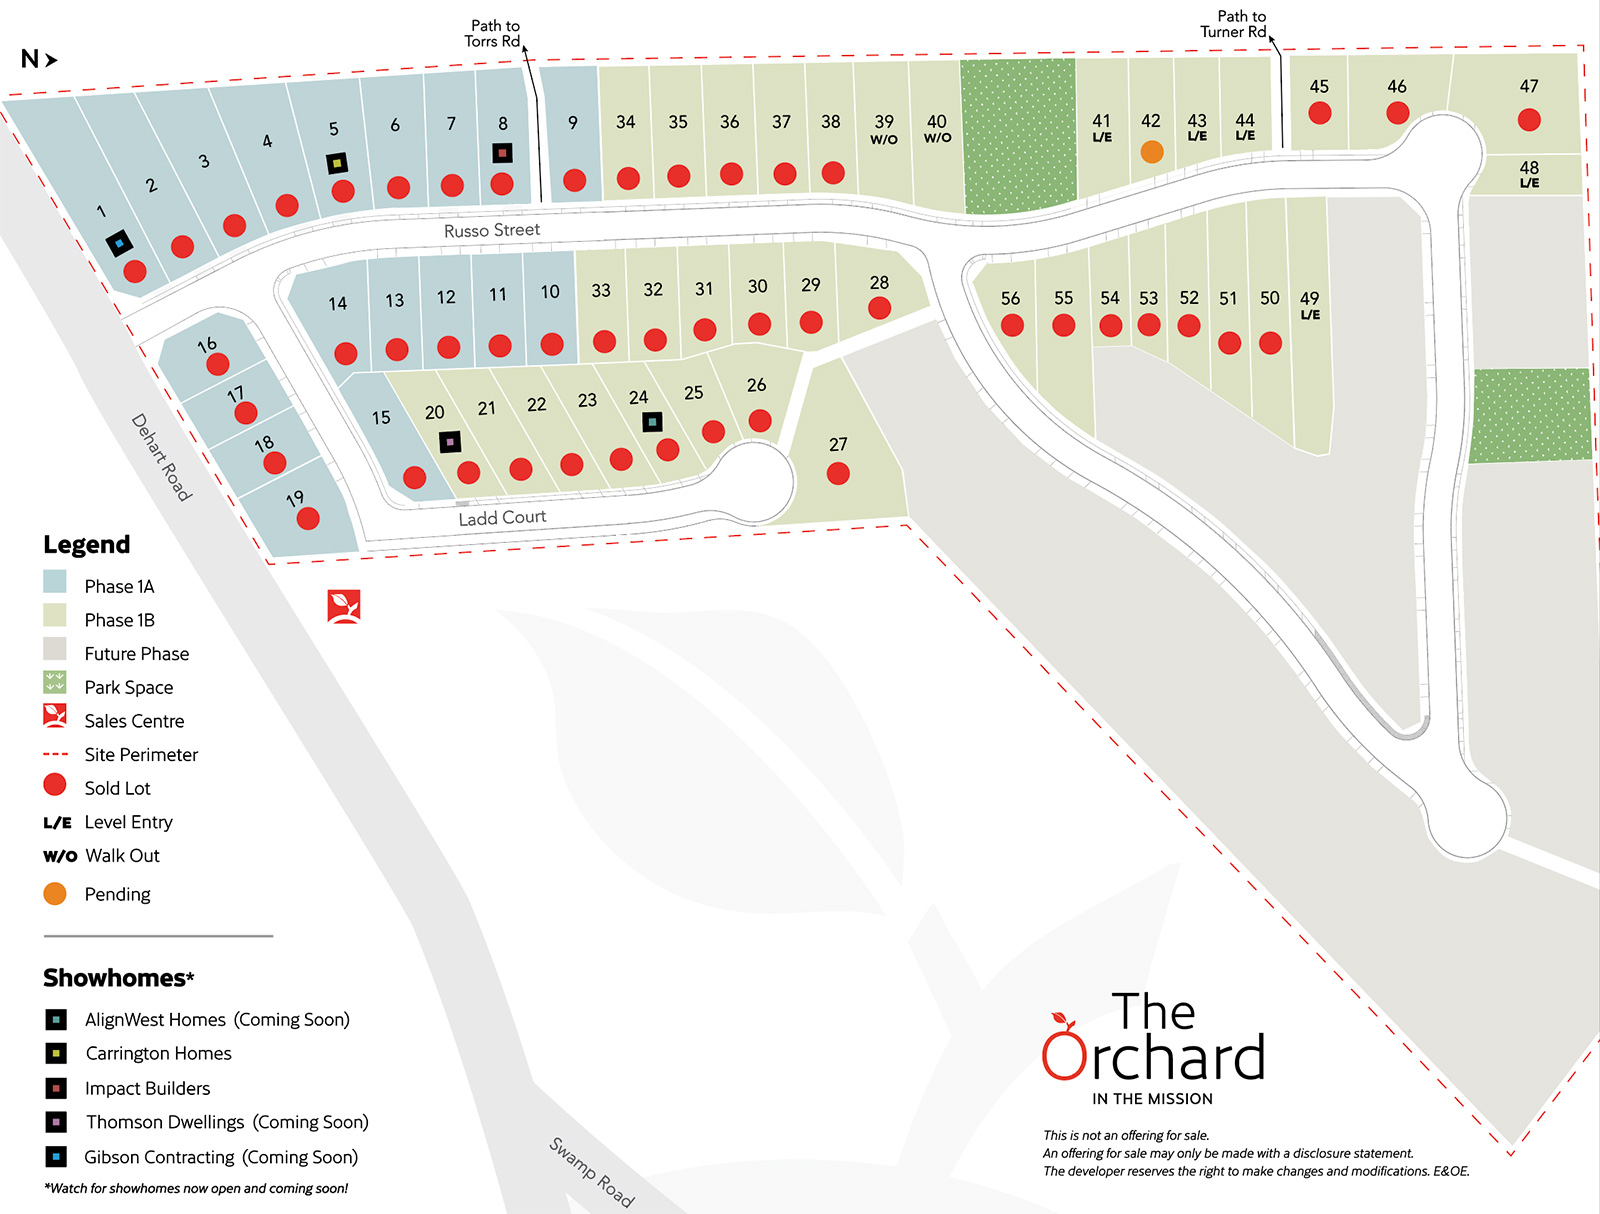 The Orchard Lots Map - September 2021